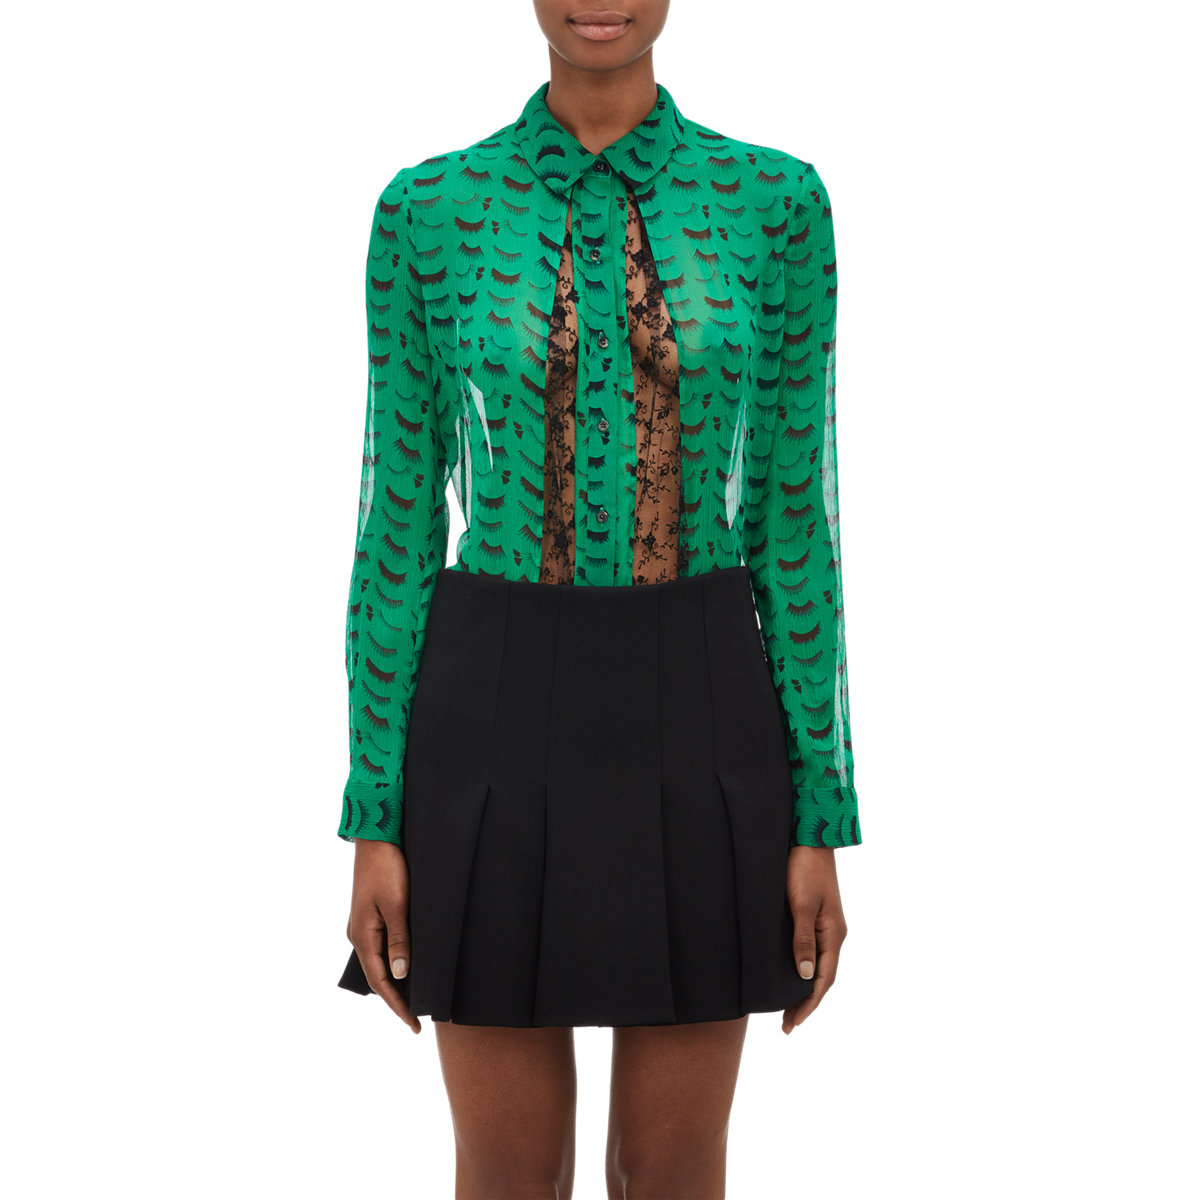 Lyst - Thakoon eyelash Georgette & Lace Blouse in Green